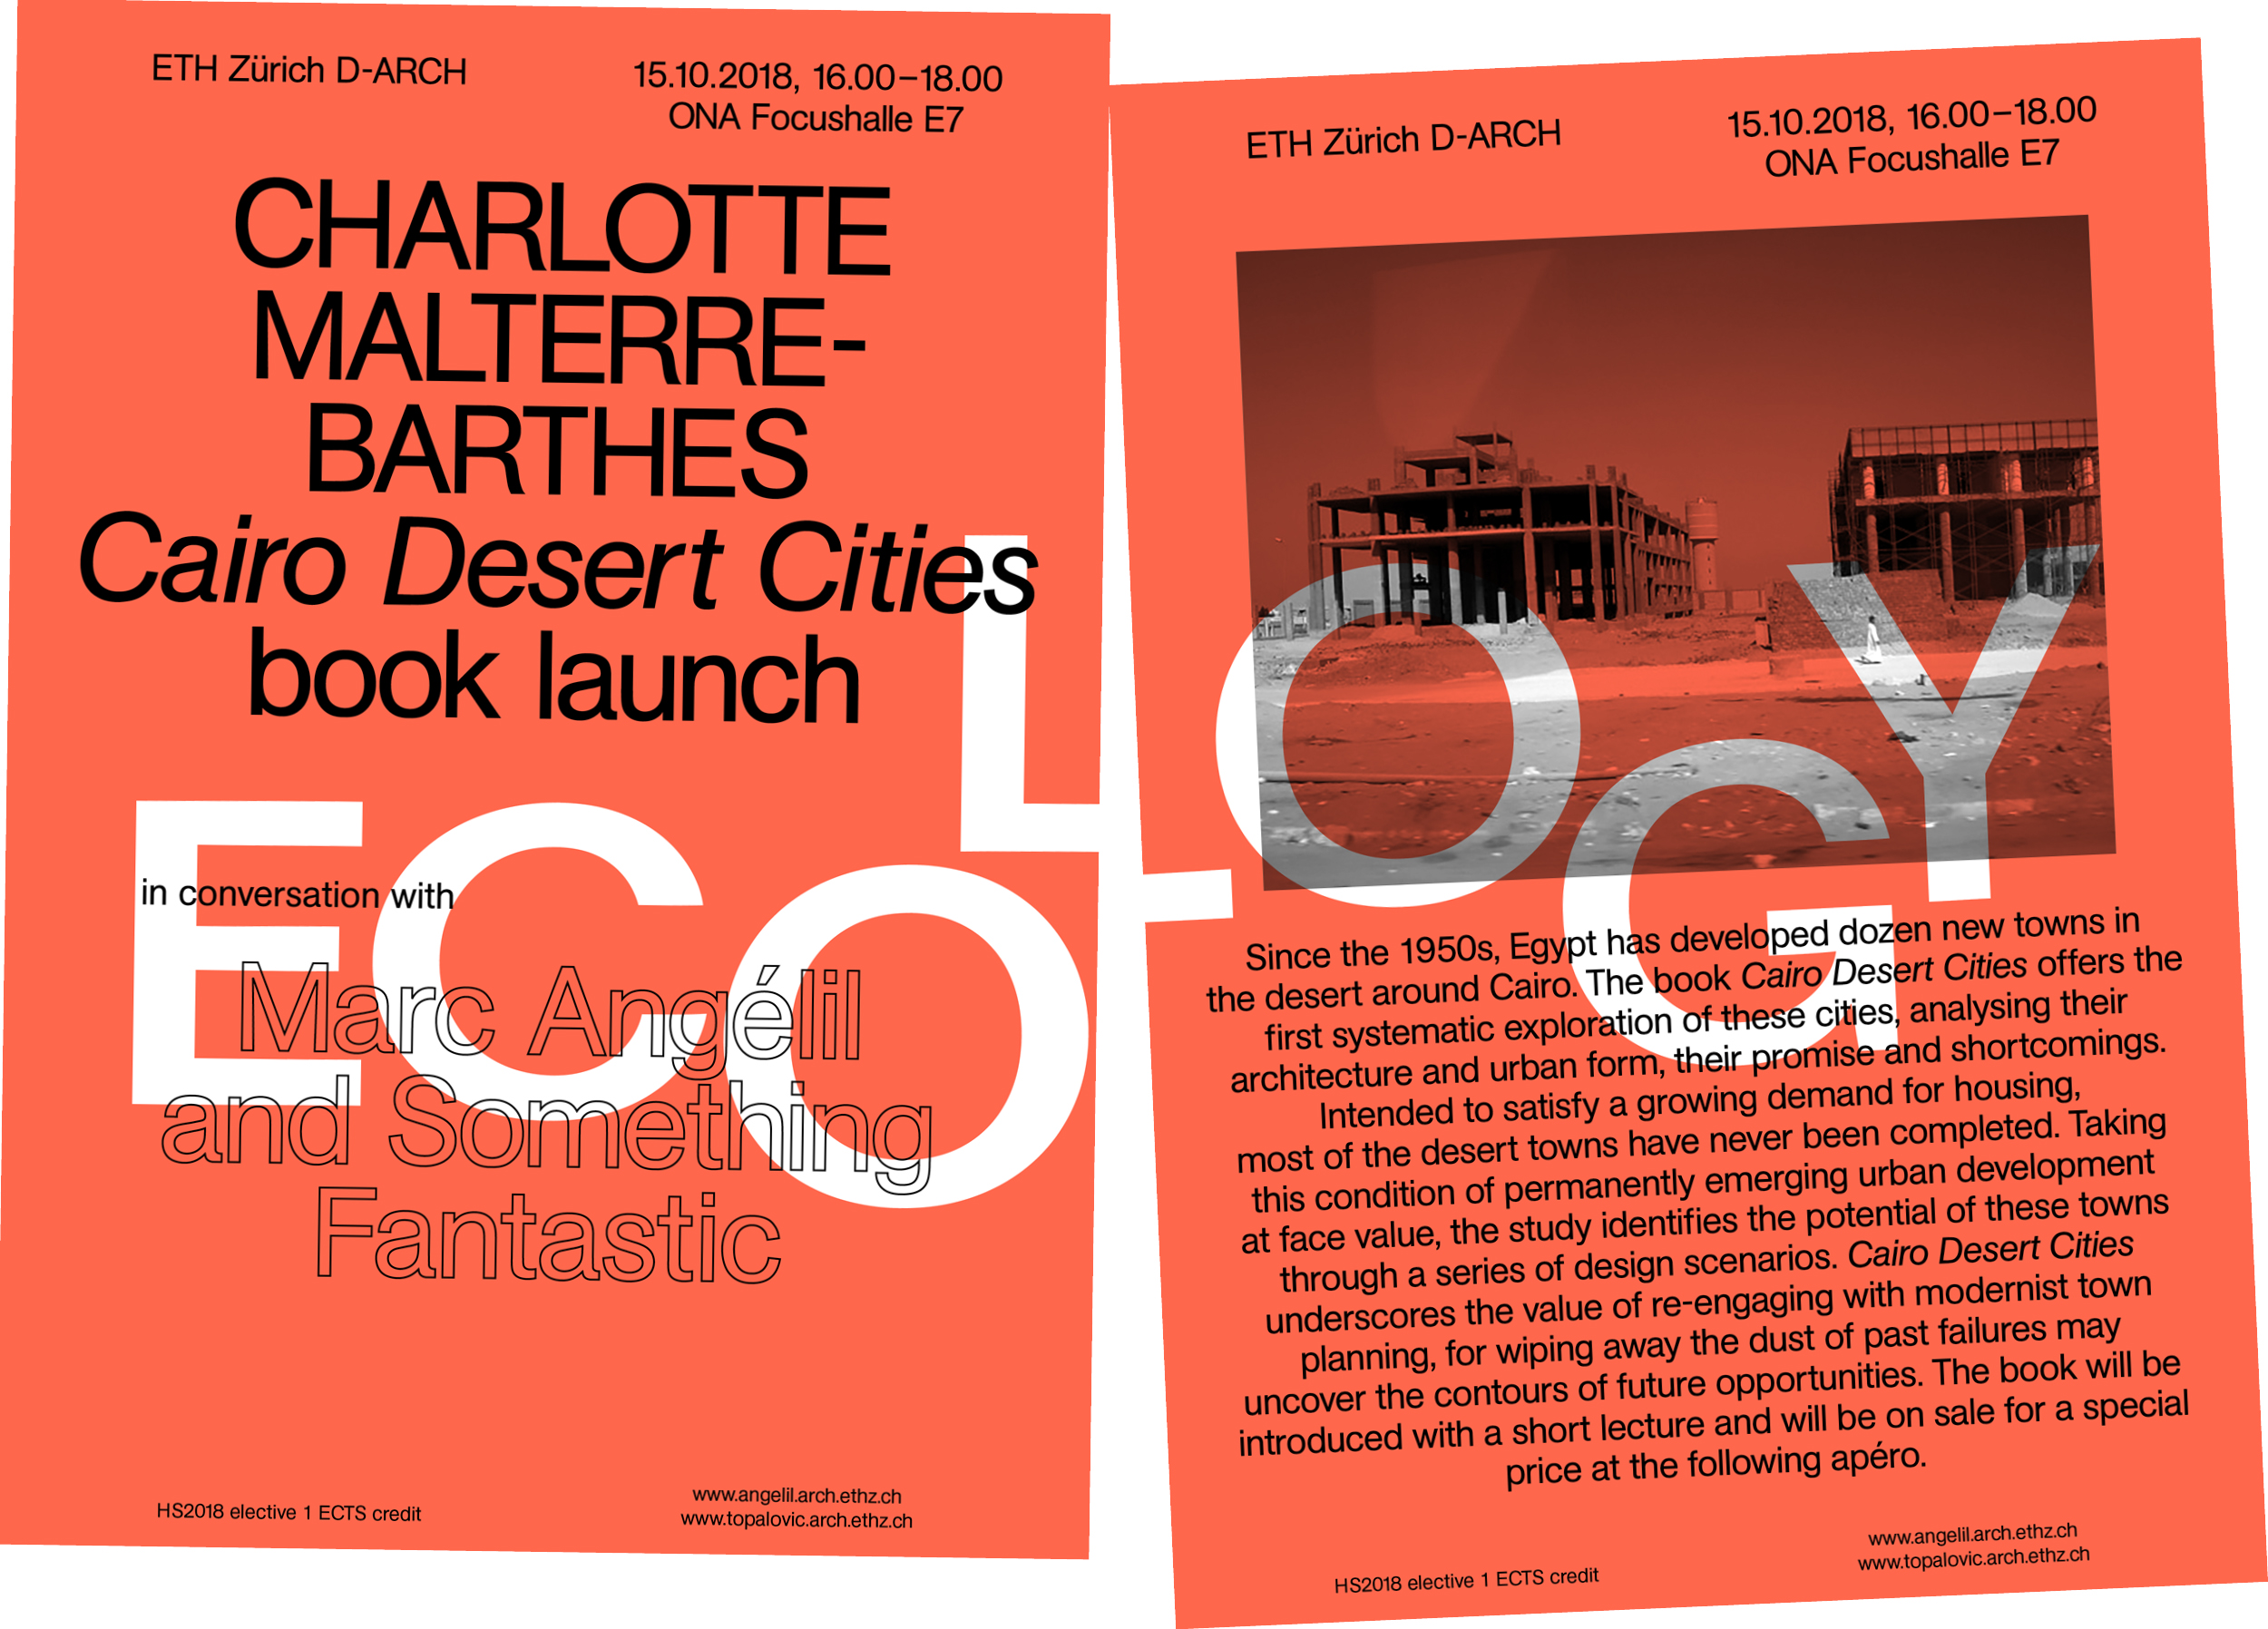 SOT HS18_LECTURE 02_Charlotte Malterre-Barthes_Flyer